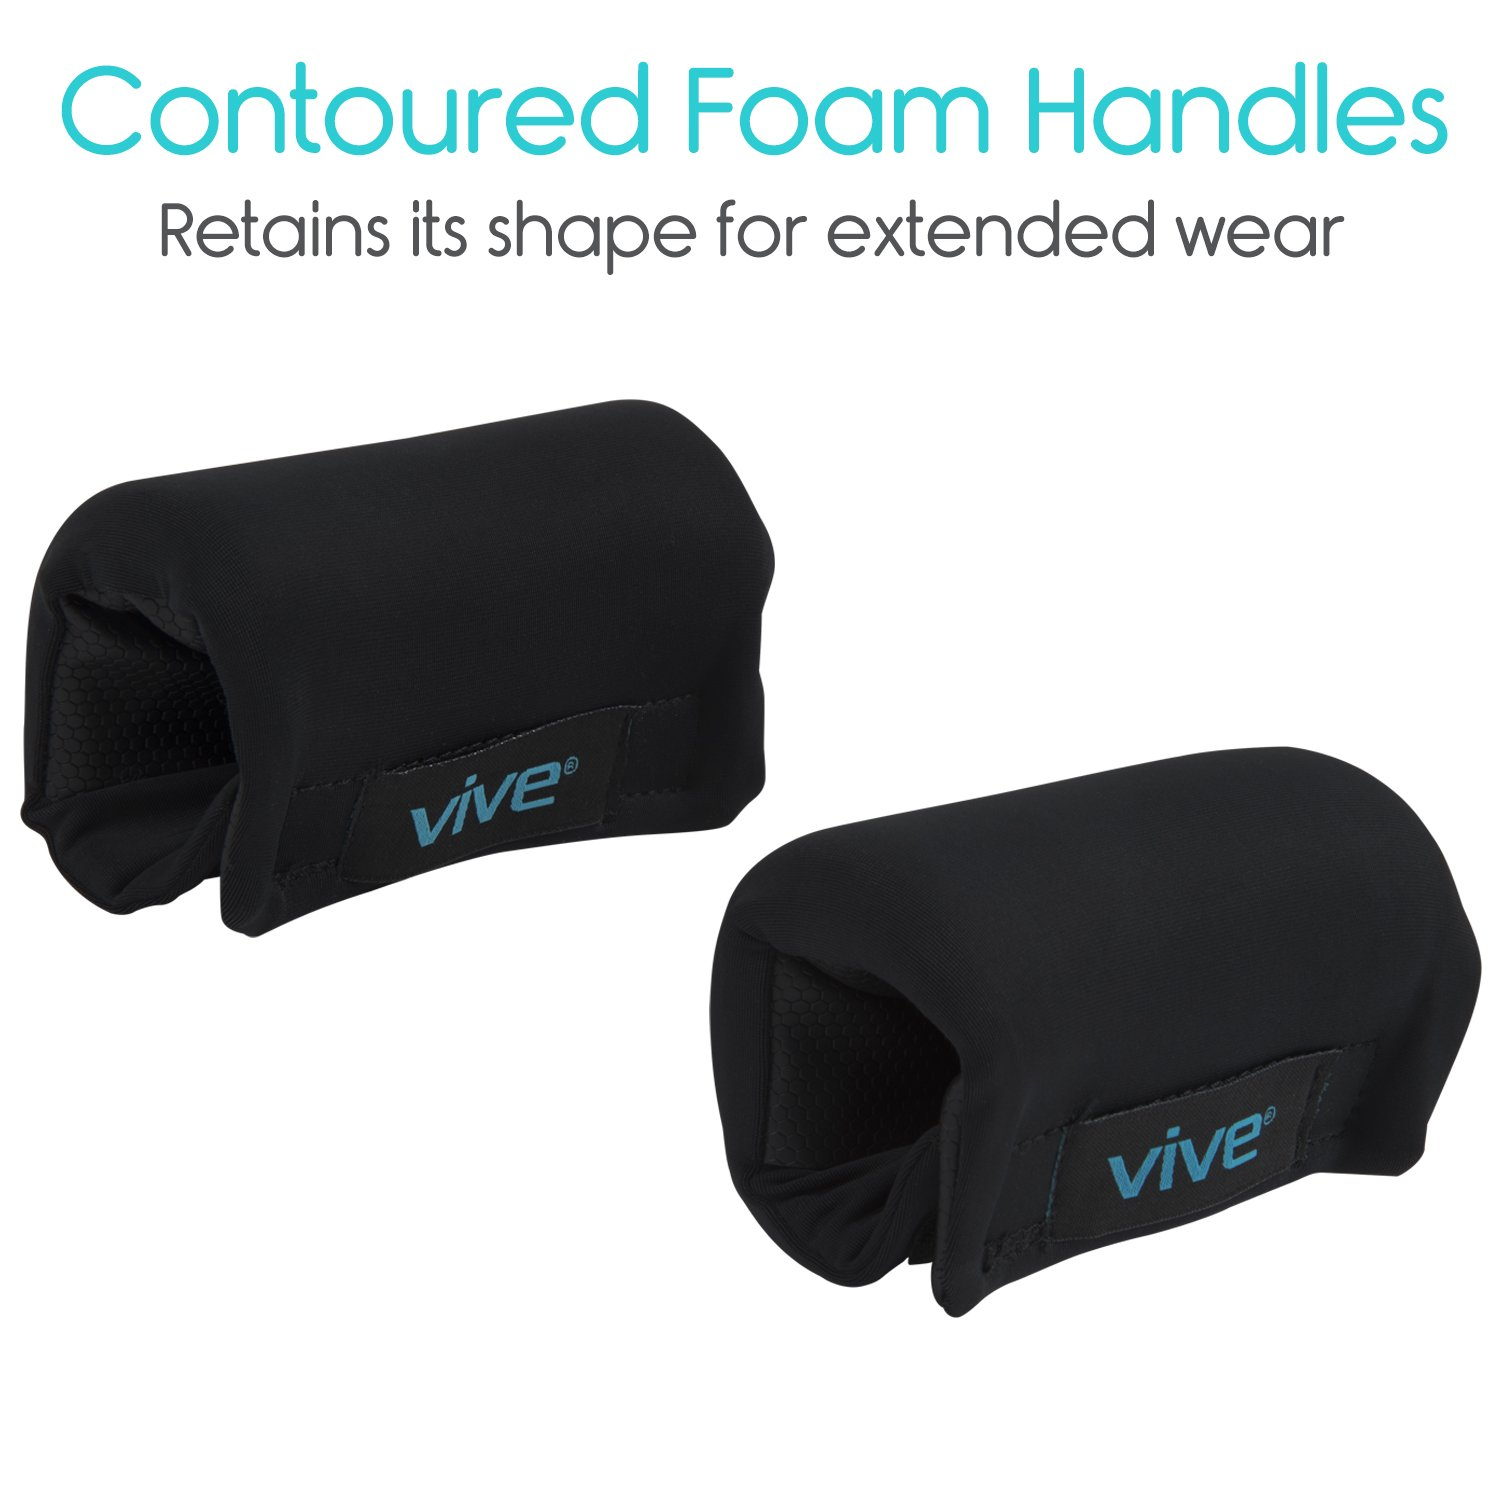 Vive Walker Padded Hand Grip Covers- Soft Cushion Padding Medical Accessories for Folding Rolling Walker, Rollator Handle, Senior, Elderly Grippers - Crutch Handle Pads - Mobility Aid Hand Cushion by Vive (Image #8)